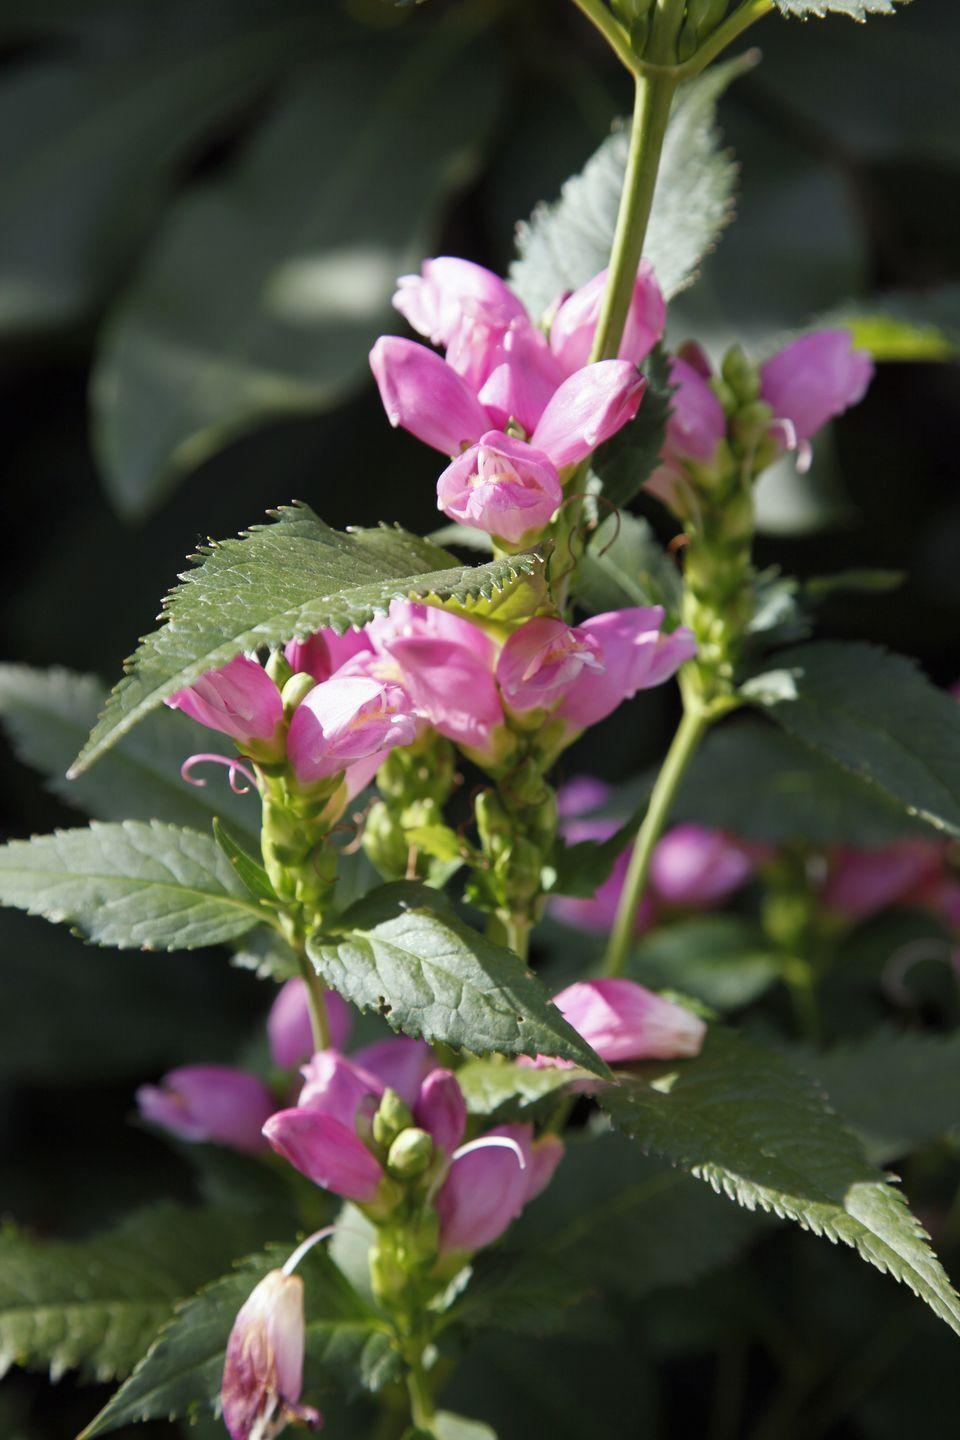 """<p>Named after the blooms' close resemblance to the head of a turtle, <a href=""""https://www.finegardening.com/plant/turtlehead-chelone-obliqua"""" rel=""""nofollow noopener"""" target=""""_blank"""" data-ylk=""""slk:chelones"""" class=""""link rapid-noclick-resp"""">chelones</a> grow to be an impressive three feet with petals ranging in hues of purple, pink, and white. <br></p><p><strong>When it blooms: </strong>Late summer into fall</p><p><strong>Where to plant:</strong> Partial shade</p><p><strong>When to plant:</strong> Spring</p><p><strong>USDA Hardiness Zones:</strong> 4 to 8</p>"""